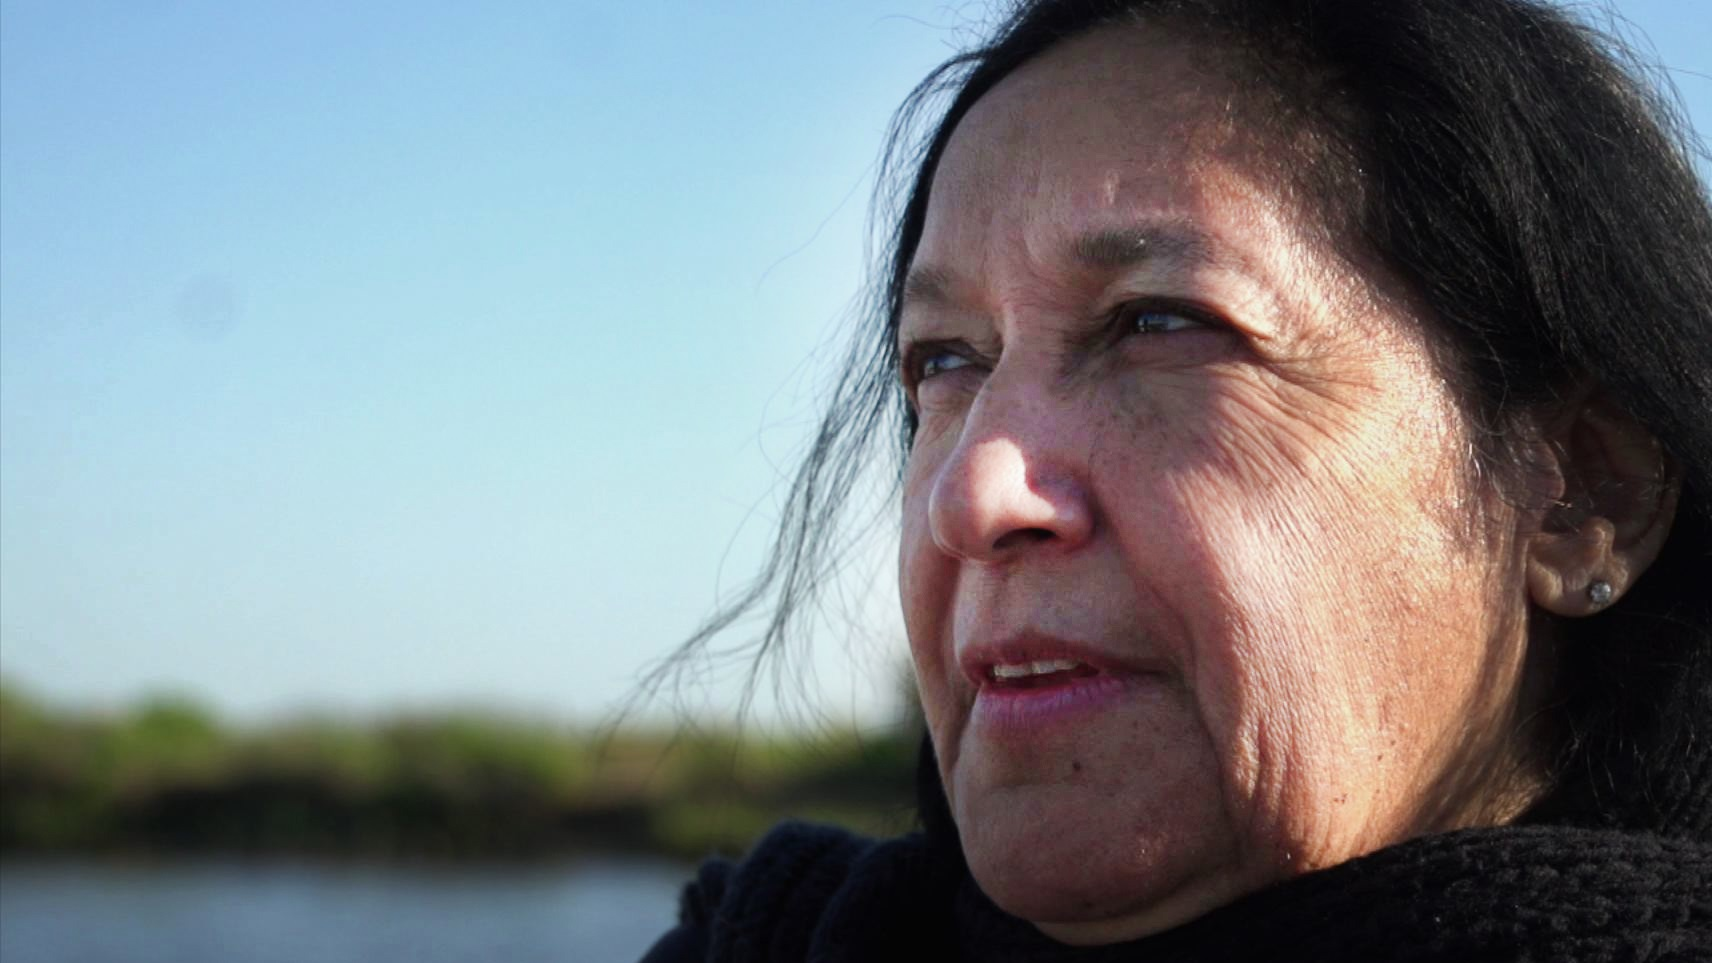 Theresa Dardar, pictured here in 2012, belongs to the Point Au Chien tribe in coastal Louisiana. She's lived here all her life. When PBS NewsHour visited four years ago, she showed us a cemetery she could once access by land -- now, she has to travel there by boat. Today, the encroaching water is worse. Photo by PBS NewsHour